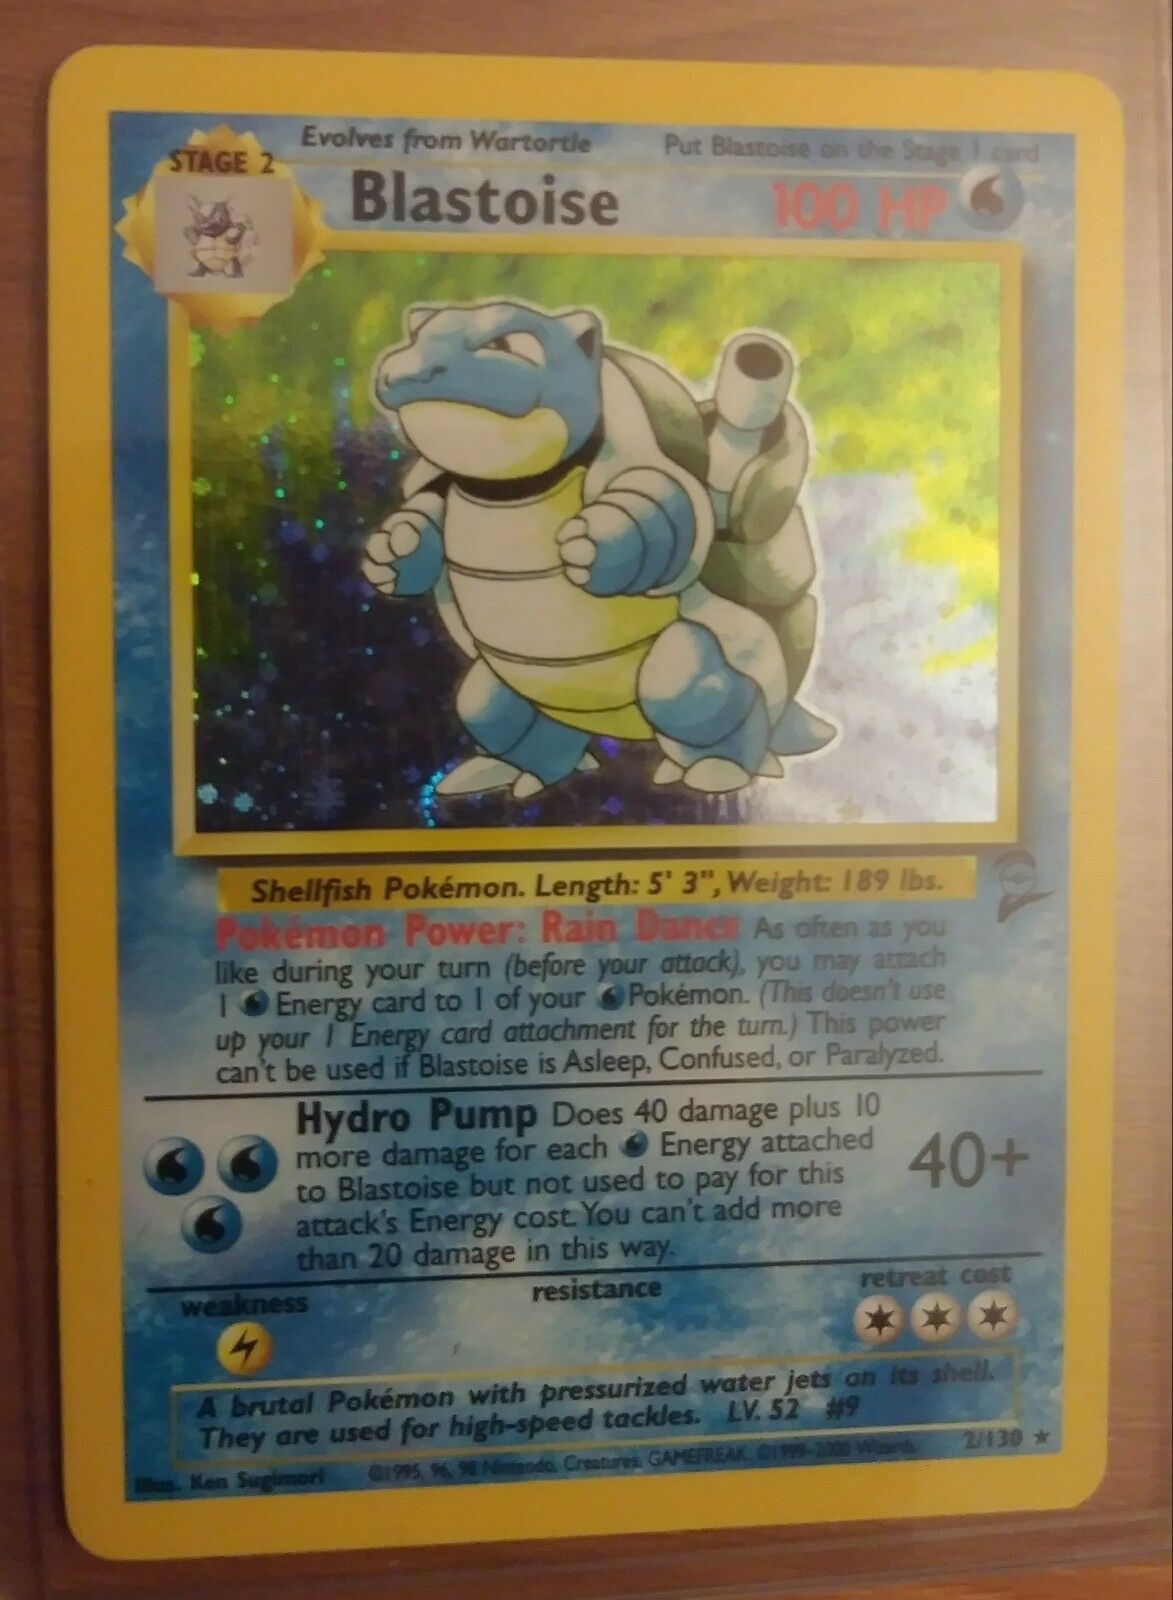 POKEMON BLASTOISE 2 130 BASE SET 2 HOLO FOIL PLAYED CONDITION REAL SCAN